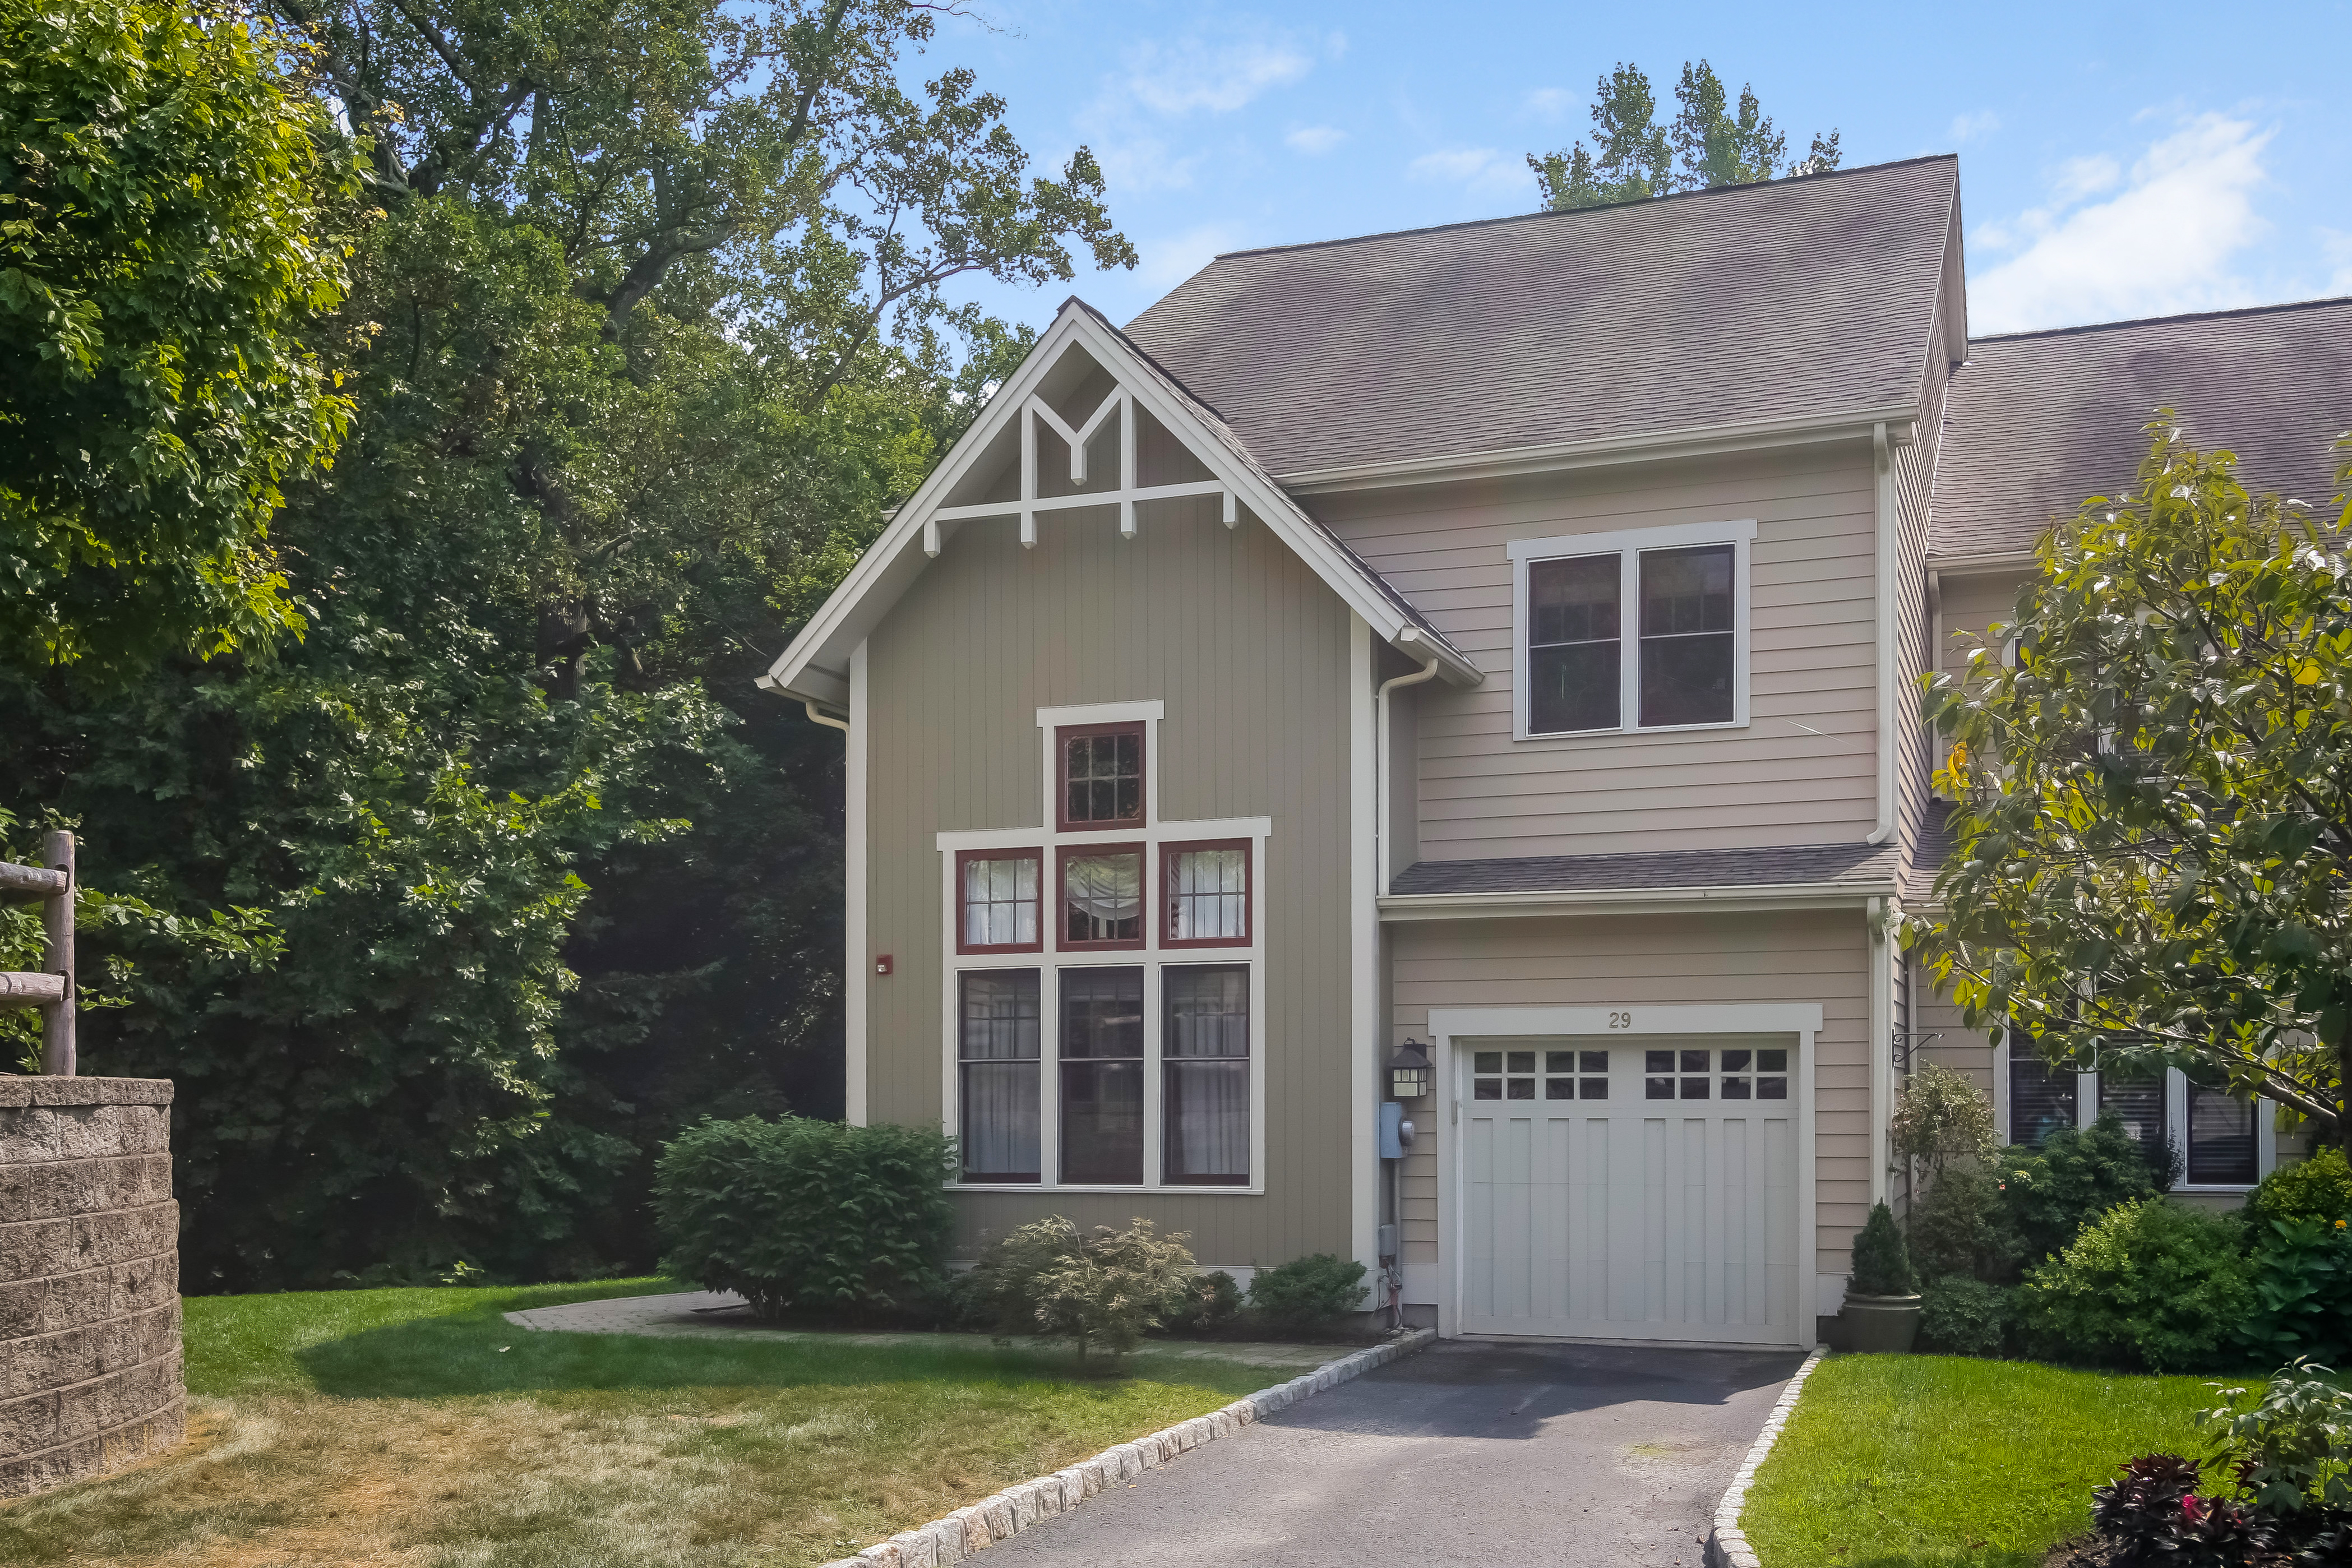 Townhouse for Sale at The Landing Riverfront Community 29 Landing Drive Dobbs Ferry, New York 10522 United States